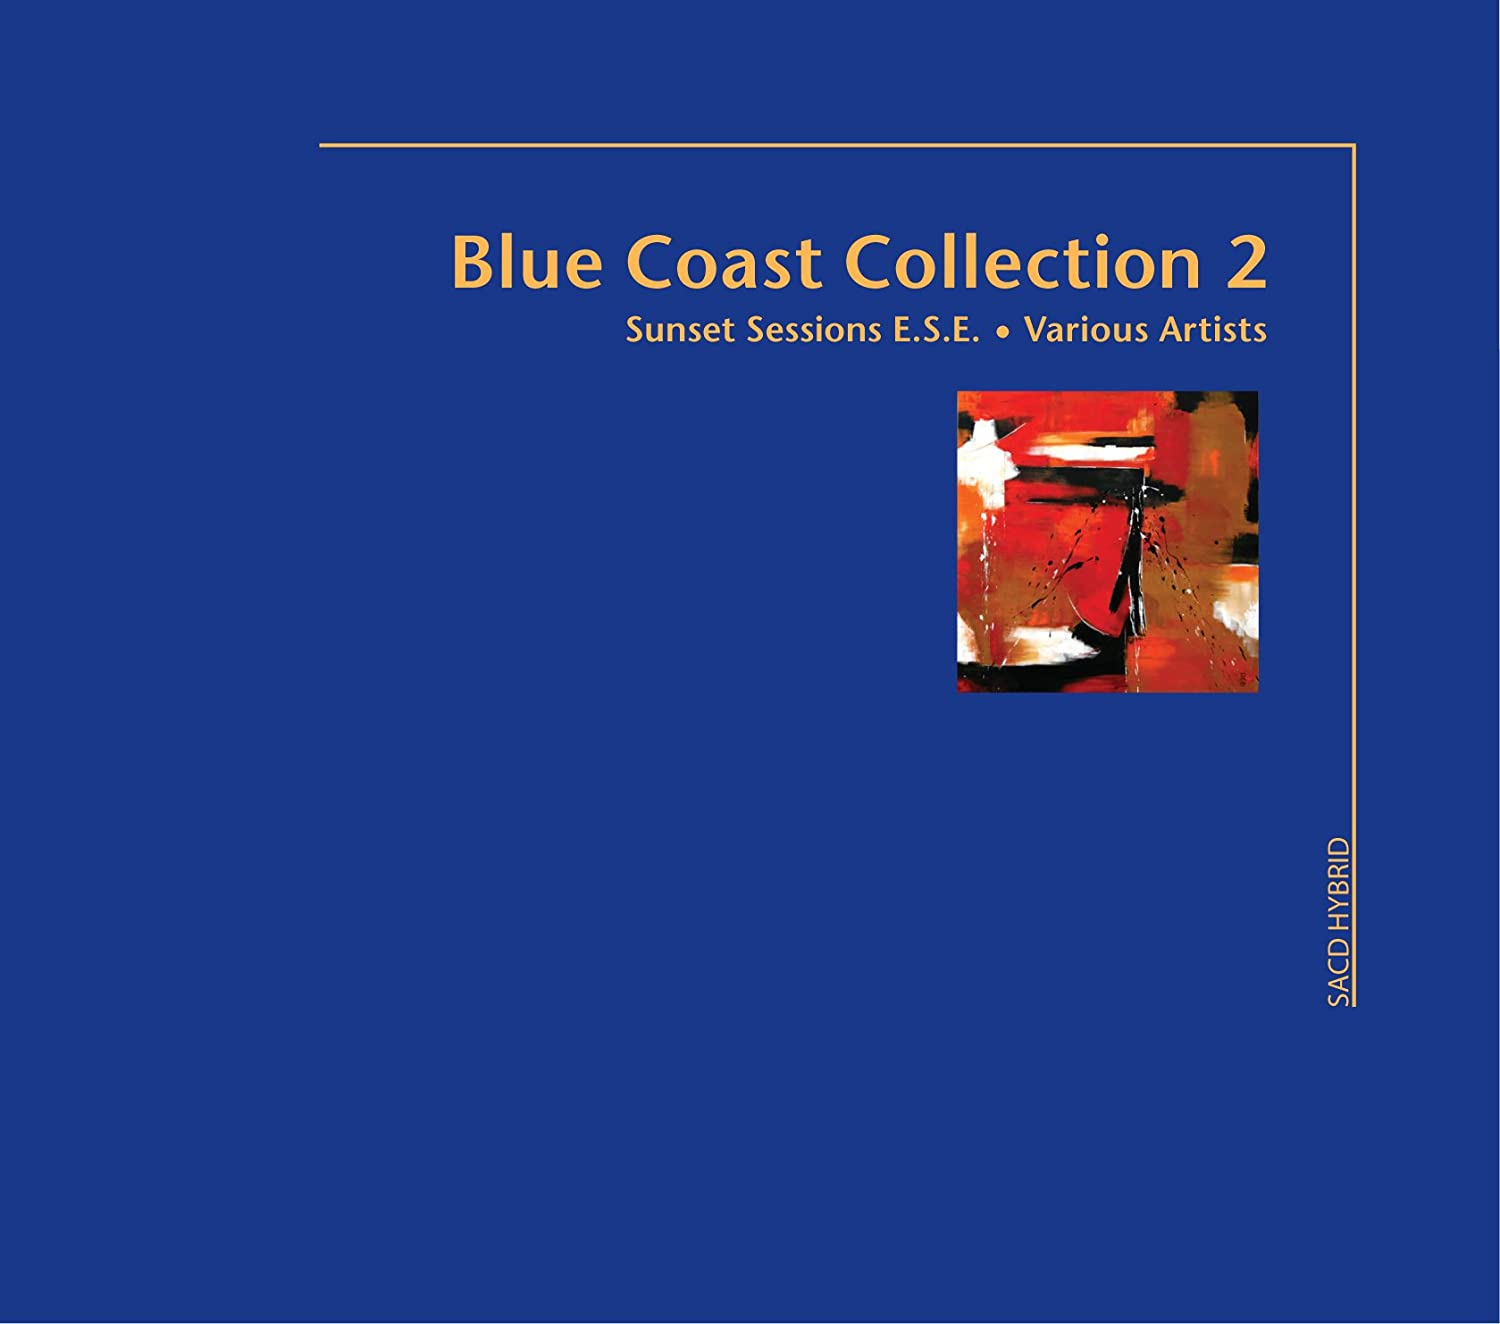 Discount mail National uniform free shipping order Blue Coast Collection 2 Various